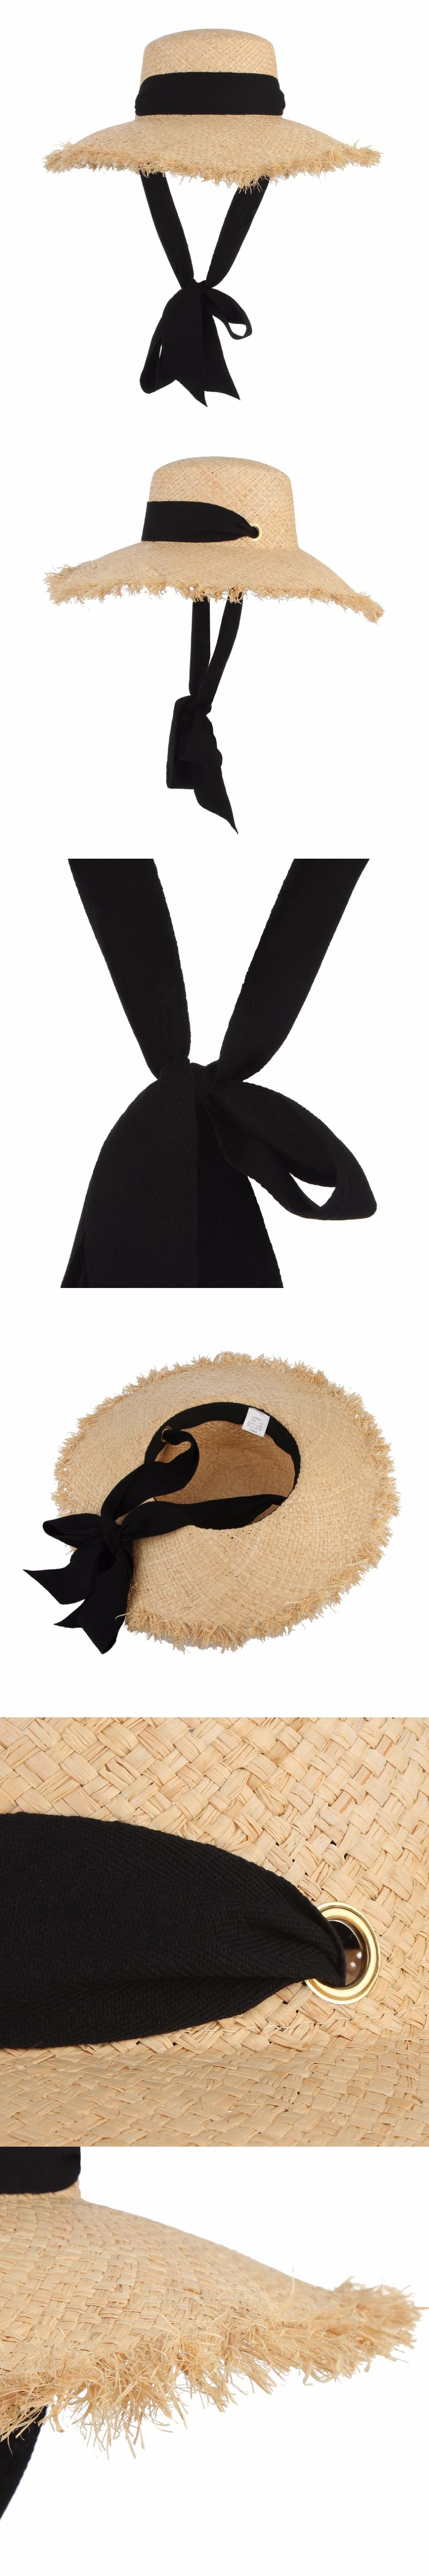 Handmade Weave Raffia Sun Hats For Women Black Ribbon Lace Up Large Brim  Straw Hat Outdoor 7fb4464fc1ac